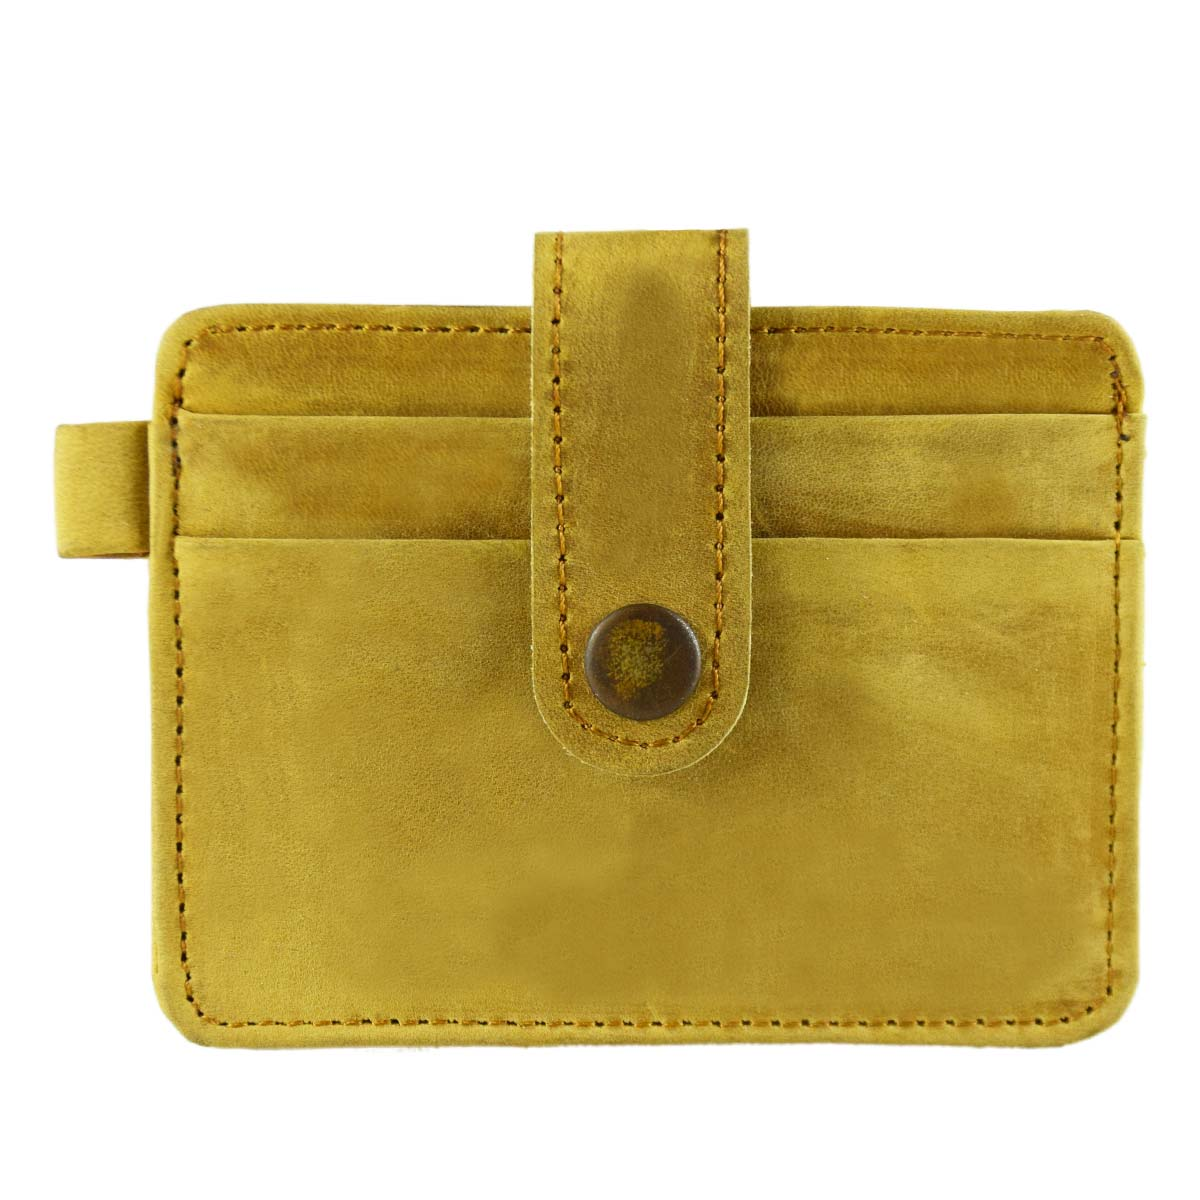 TAN CR./DR. CARD HOLDER WITH STRAP